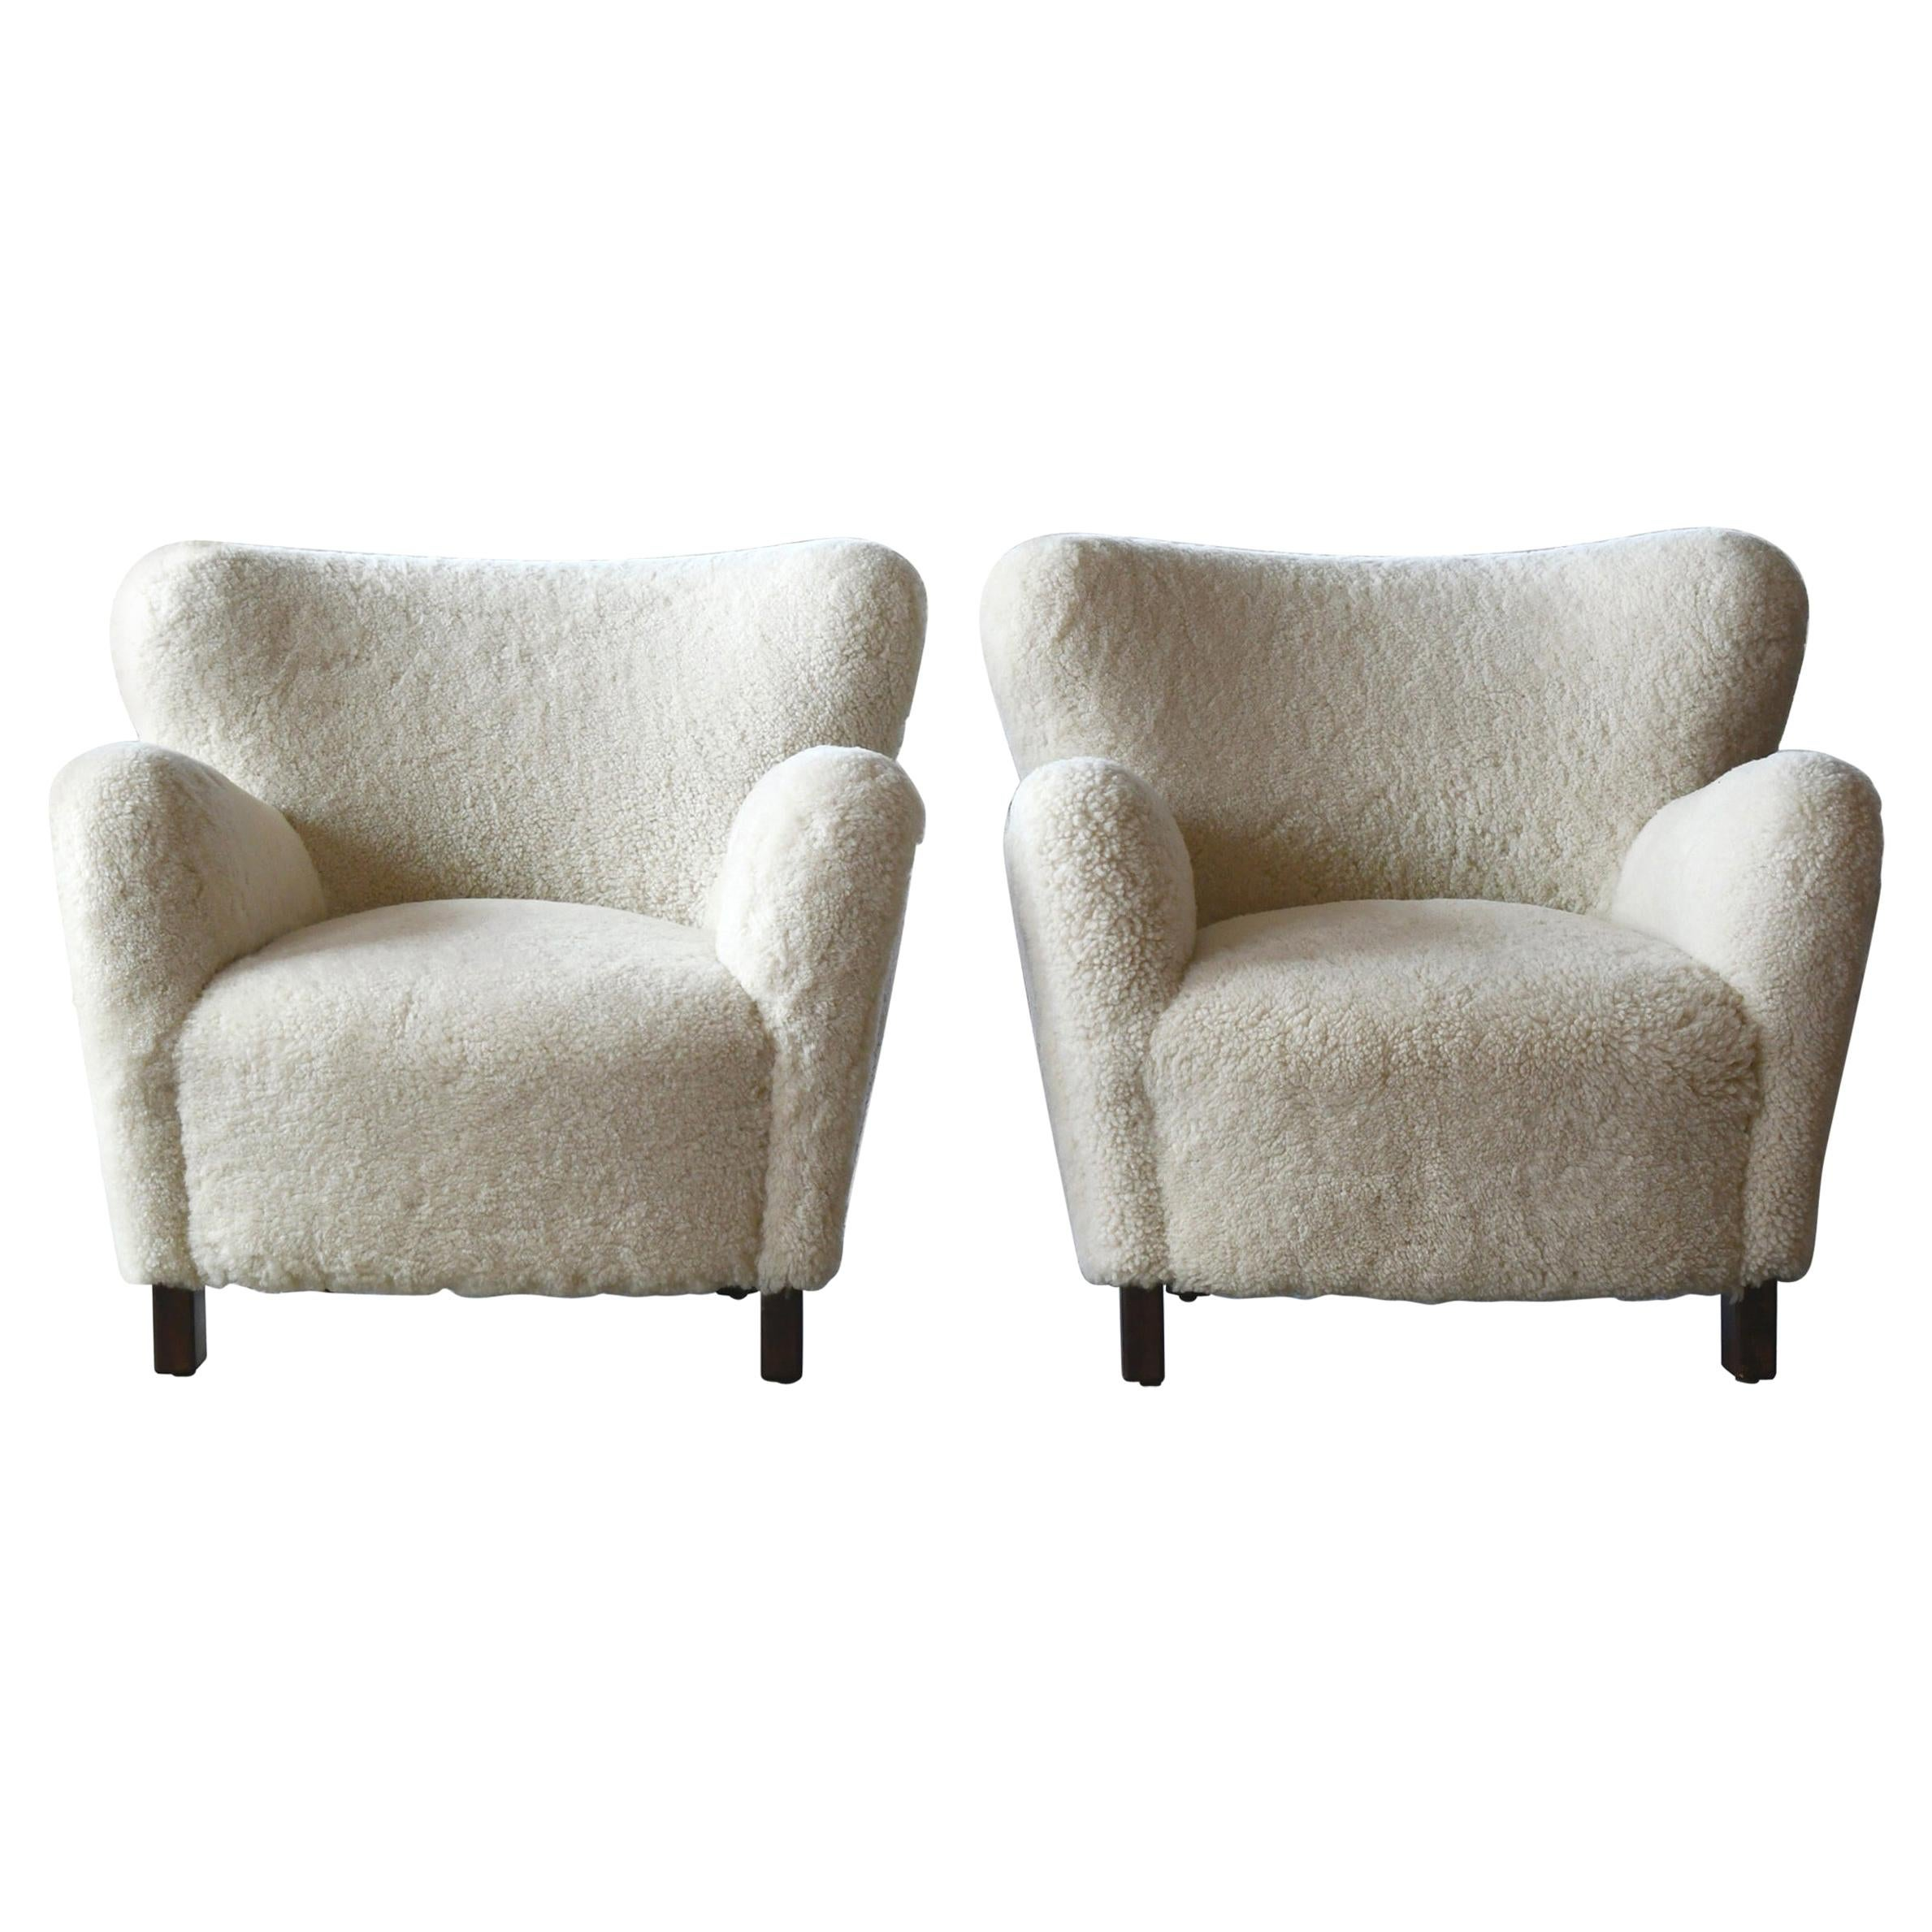 Pair of 1940s Style Classic Club or Lounge Chairs in Shearling